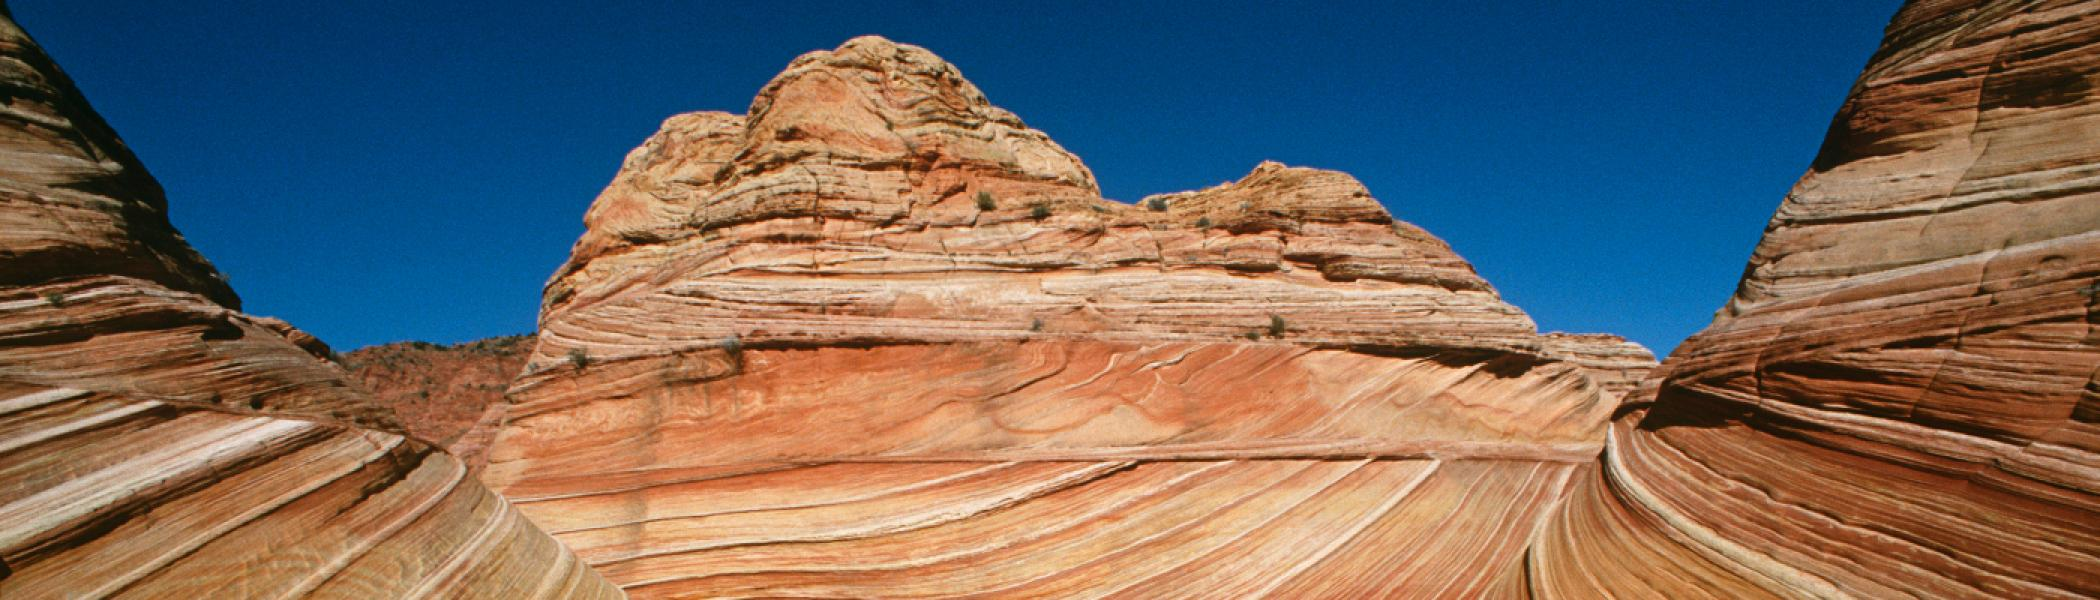 Brown rock formations in the desert against a blue sky